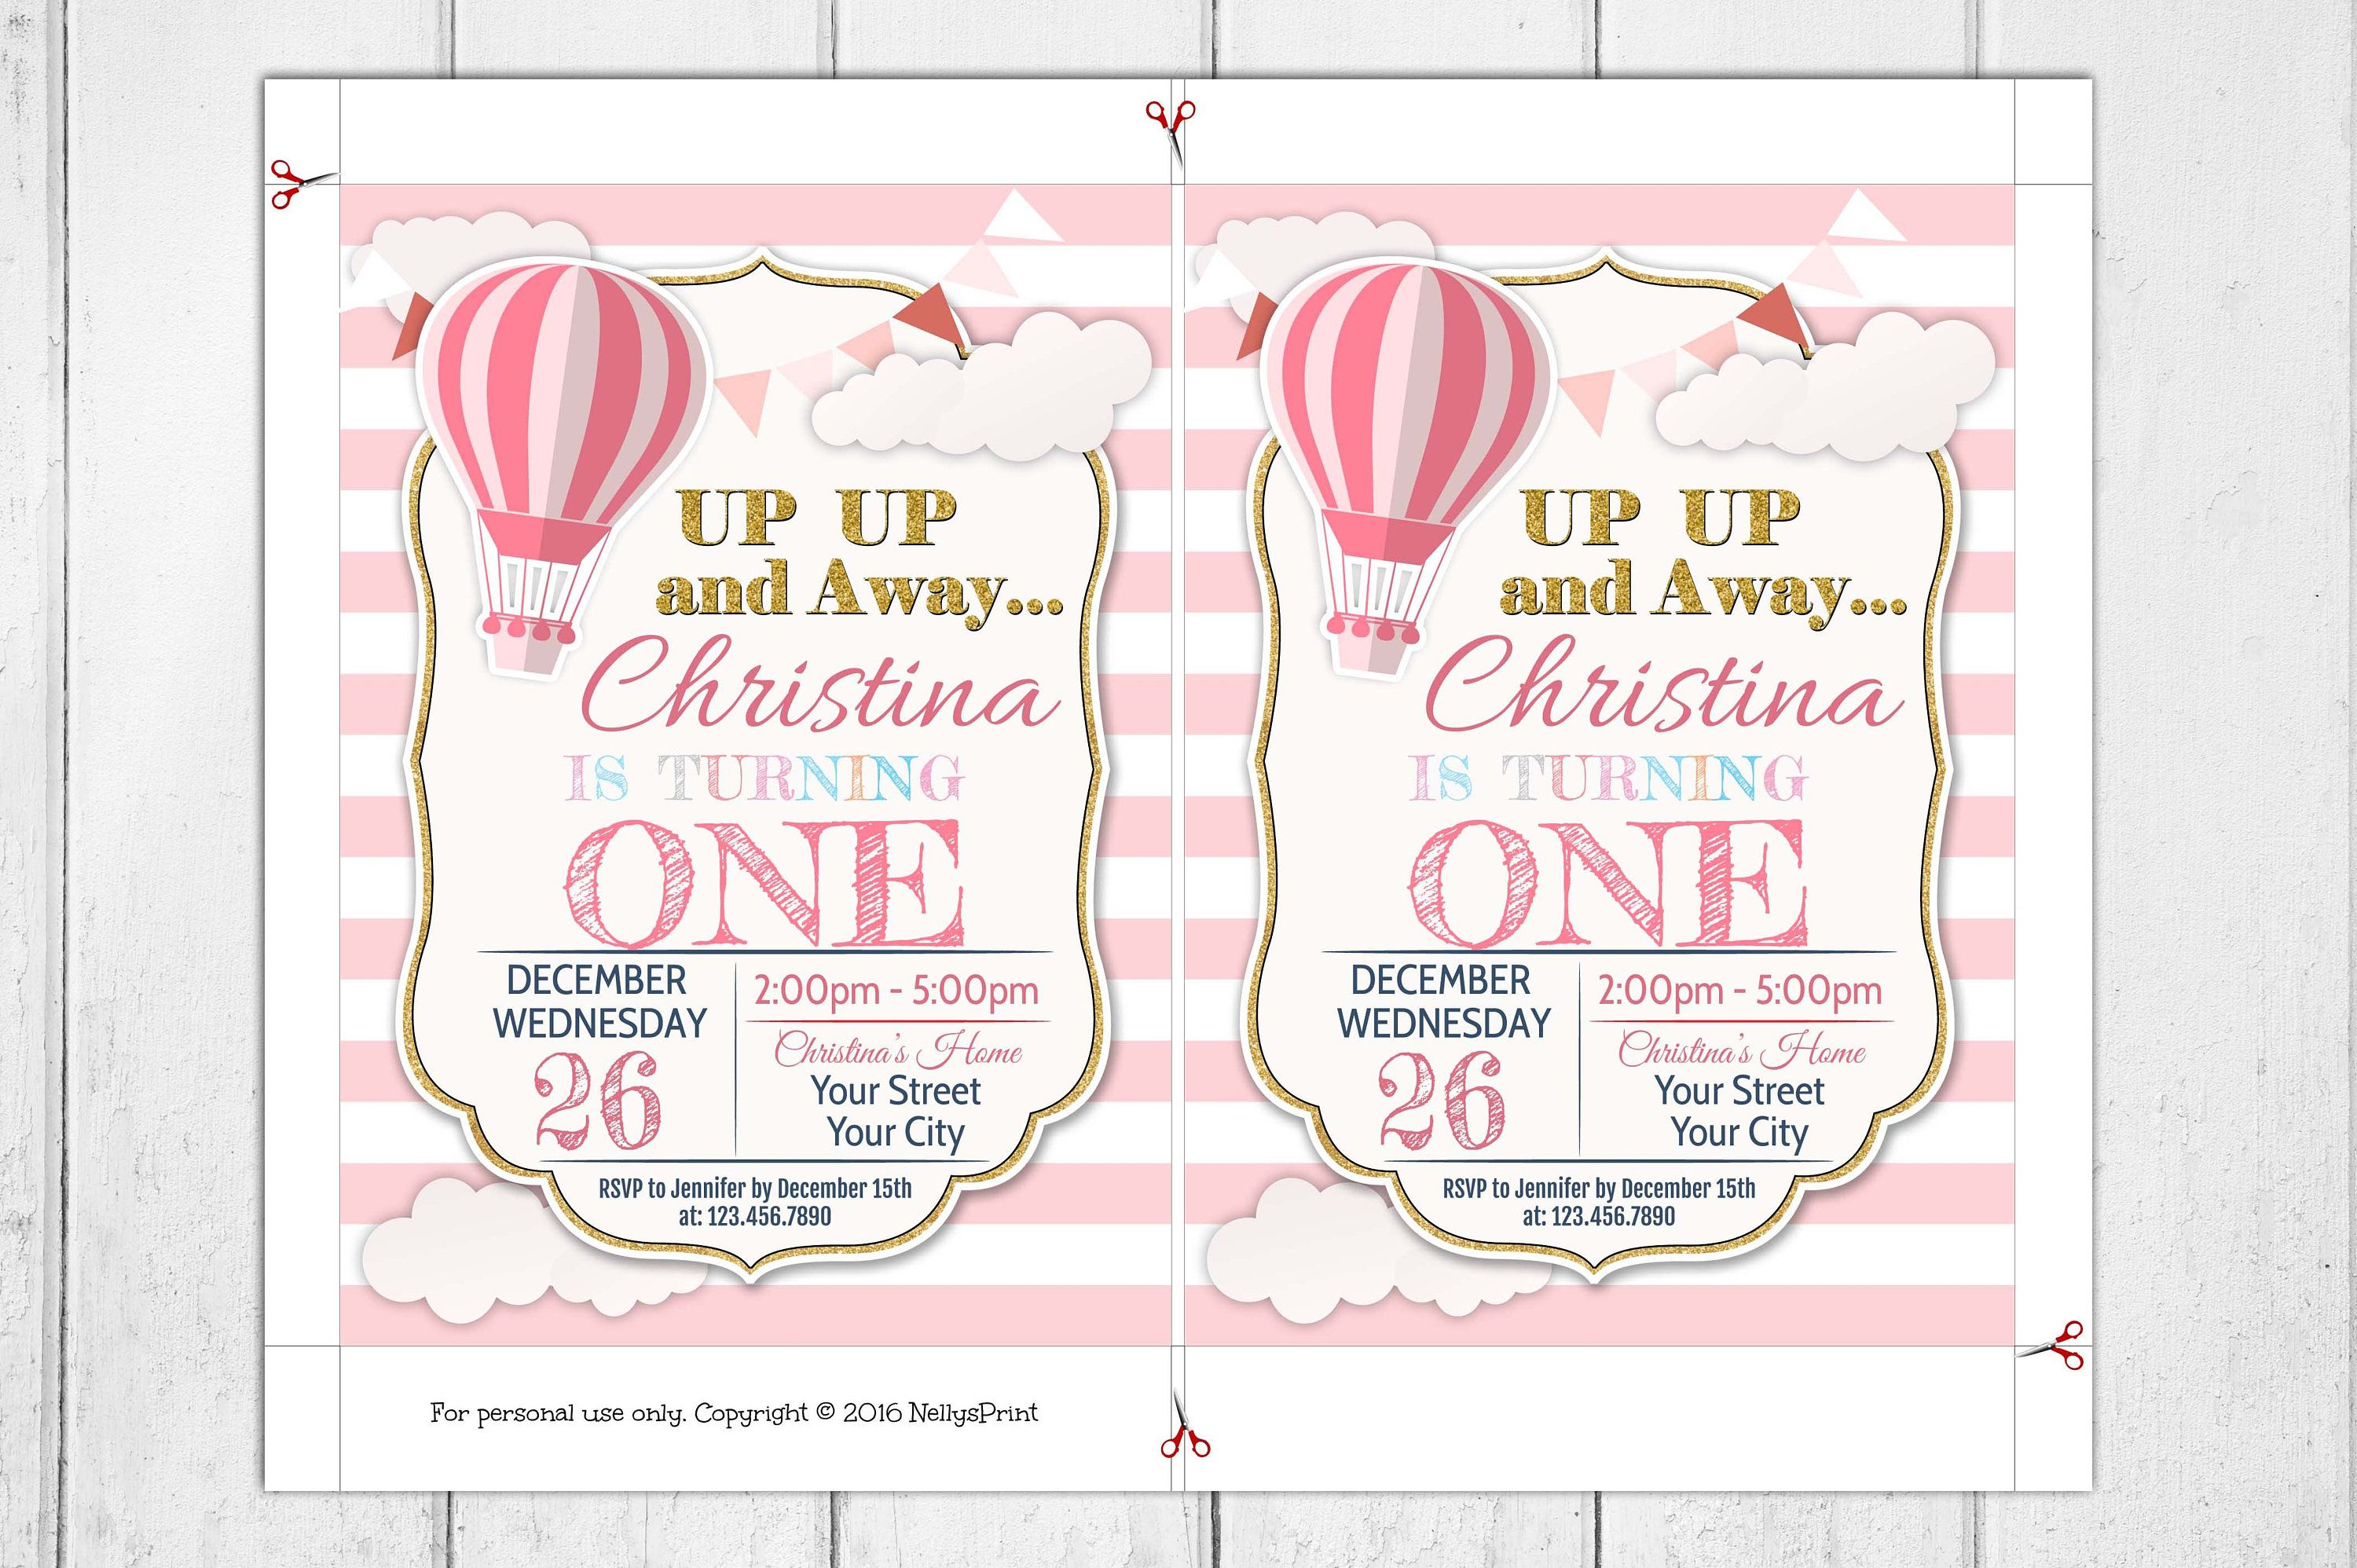 Hot Air Balloon Birthday Party Invitation, Birthday Party, Up Up and ...